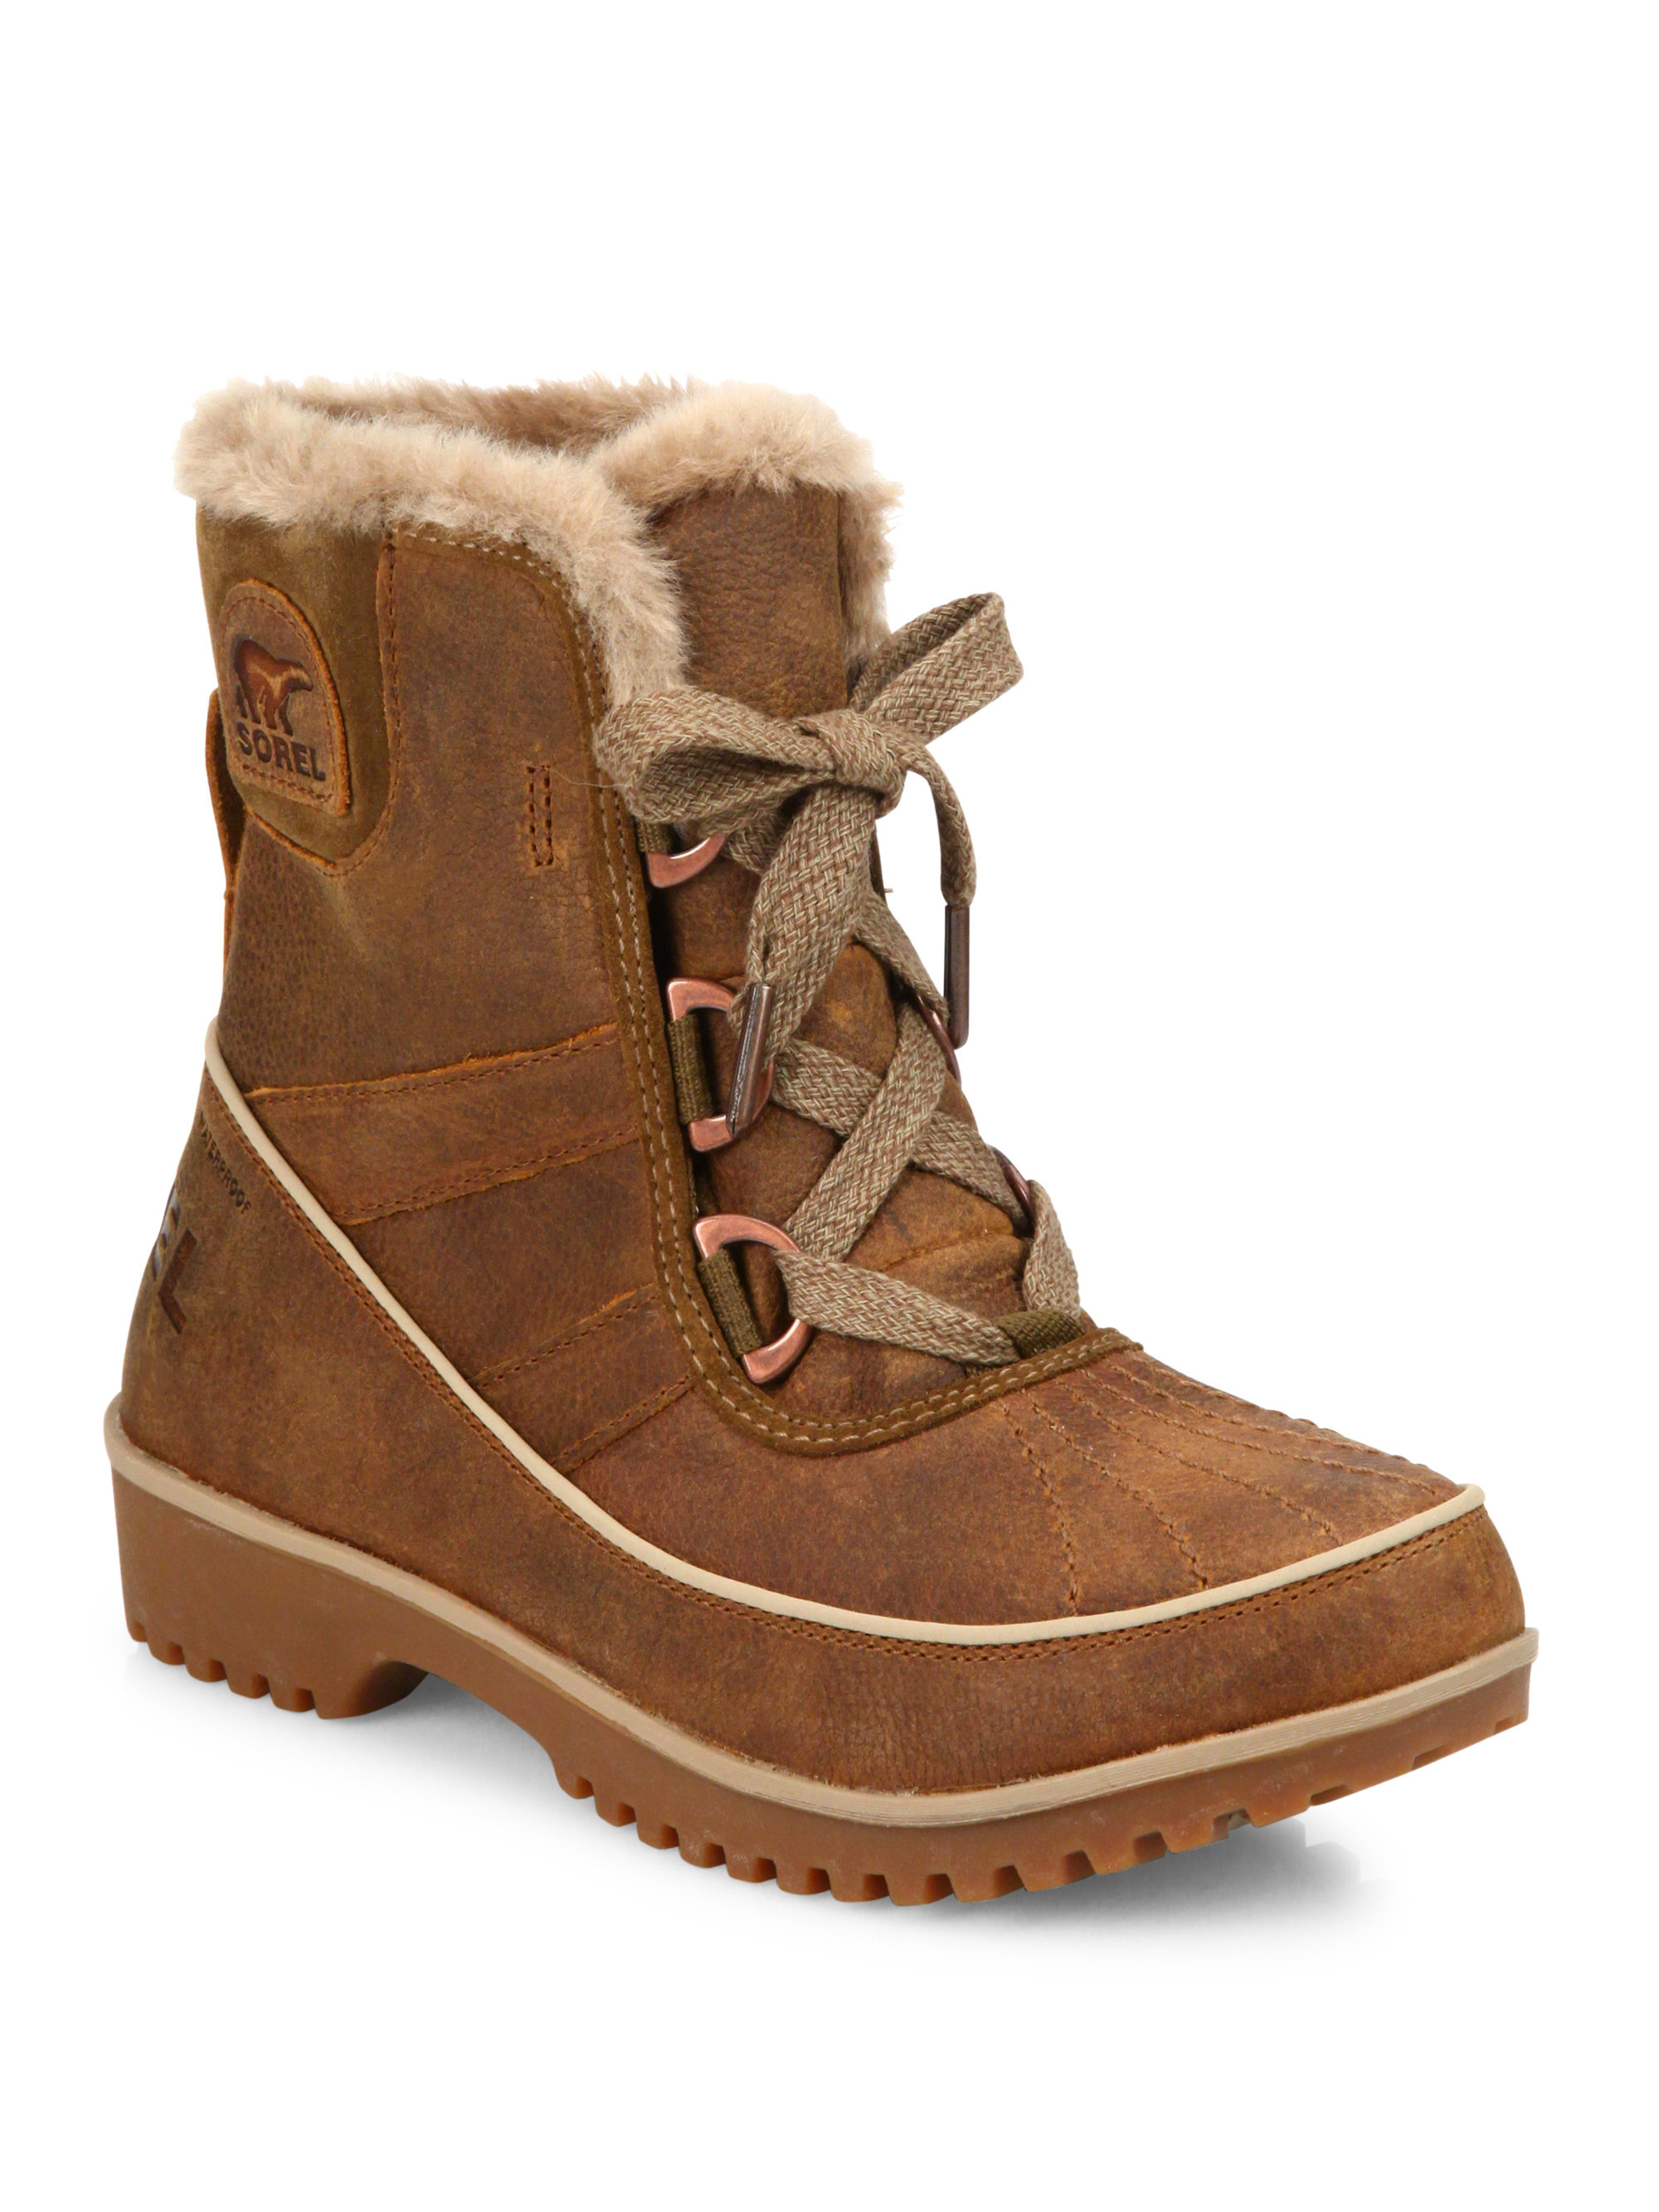 Sorel Tivoli Ii Premium Leather & Faux Fur Boots in Brown ...